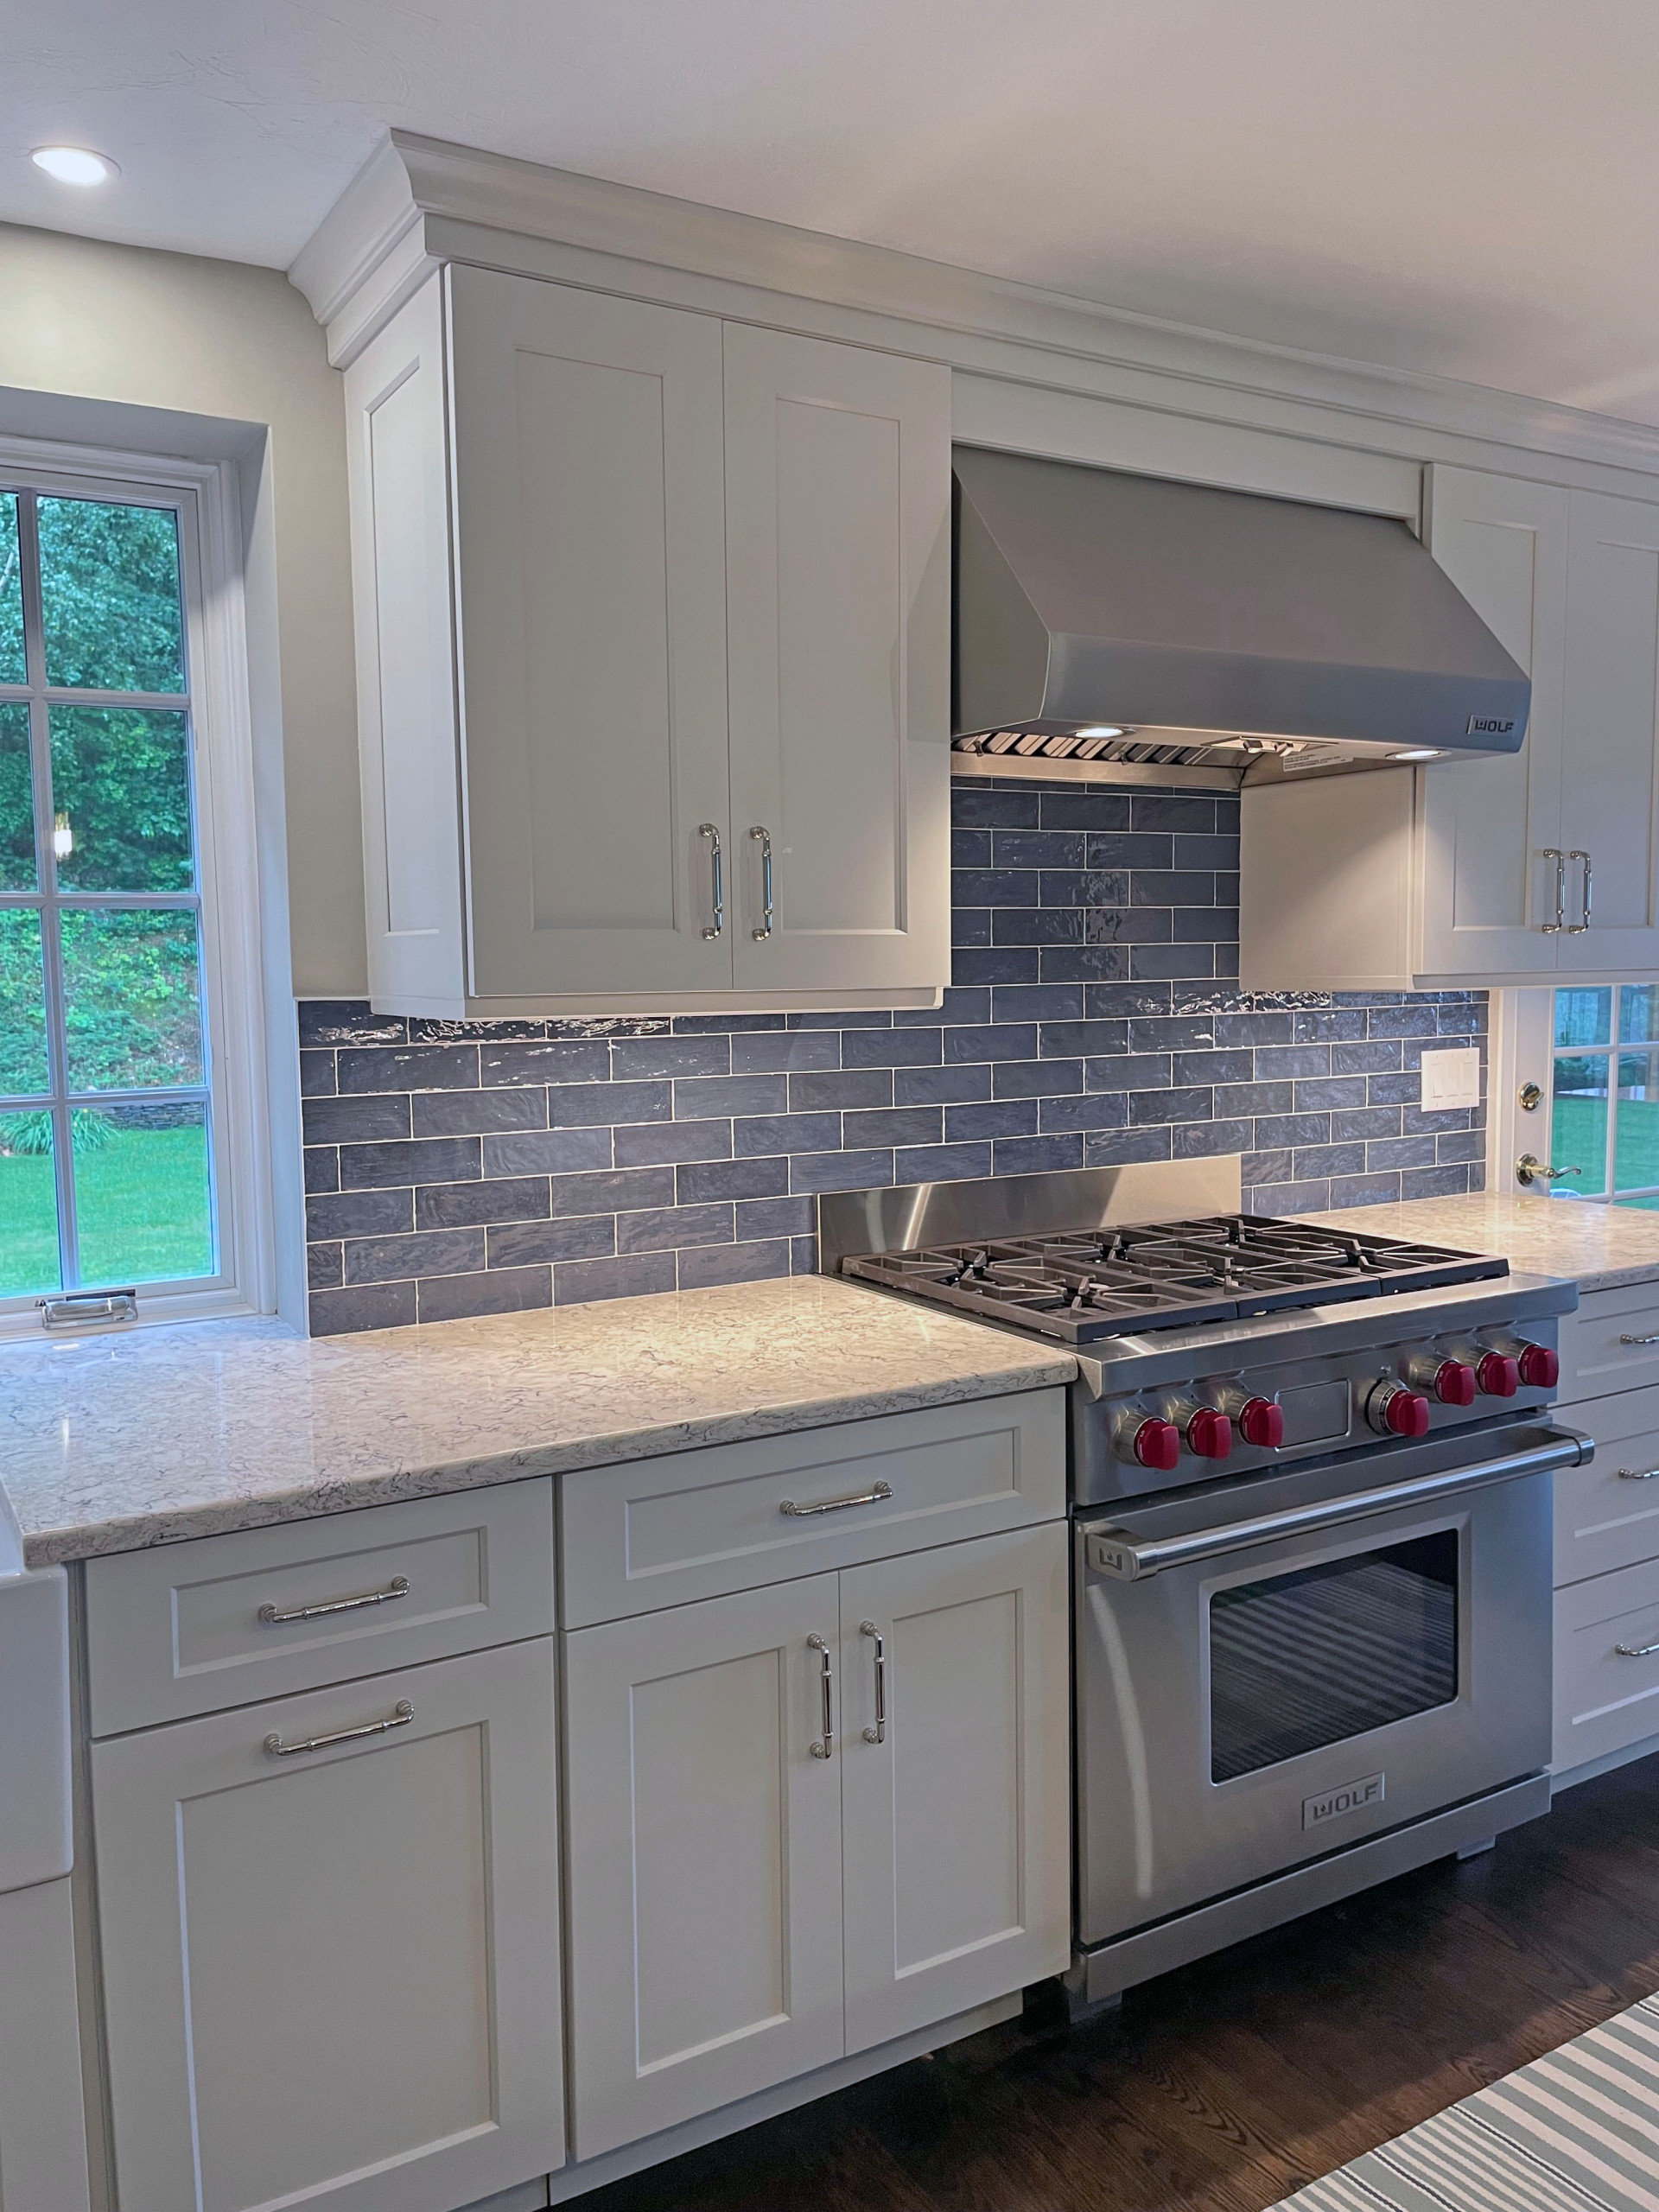 Duxbury Kitchen Expansion and Remodel